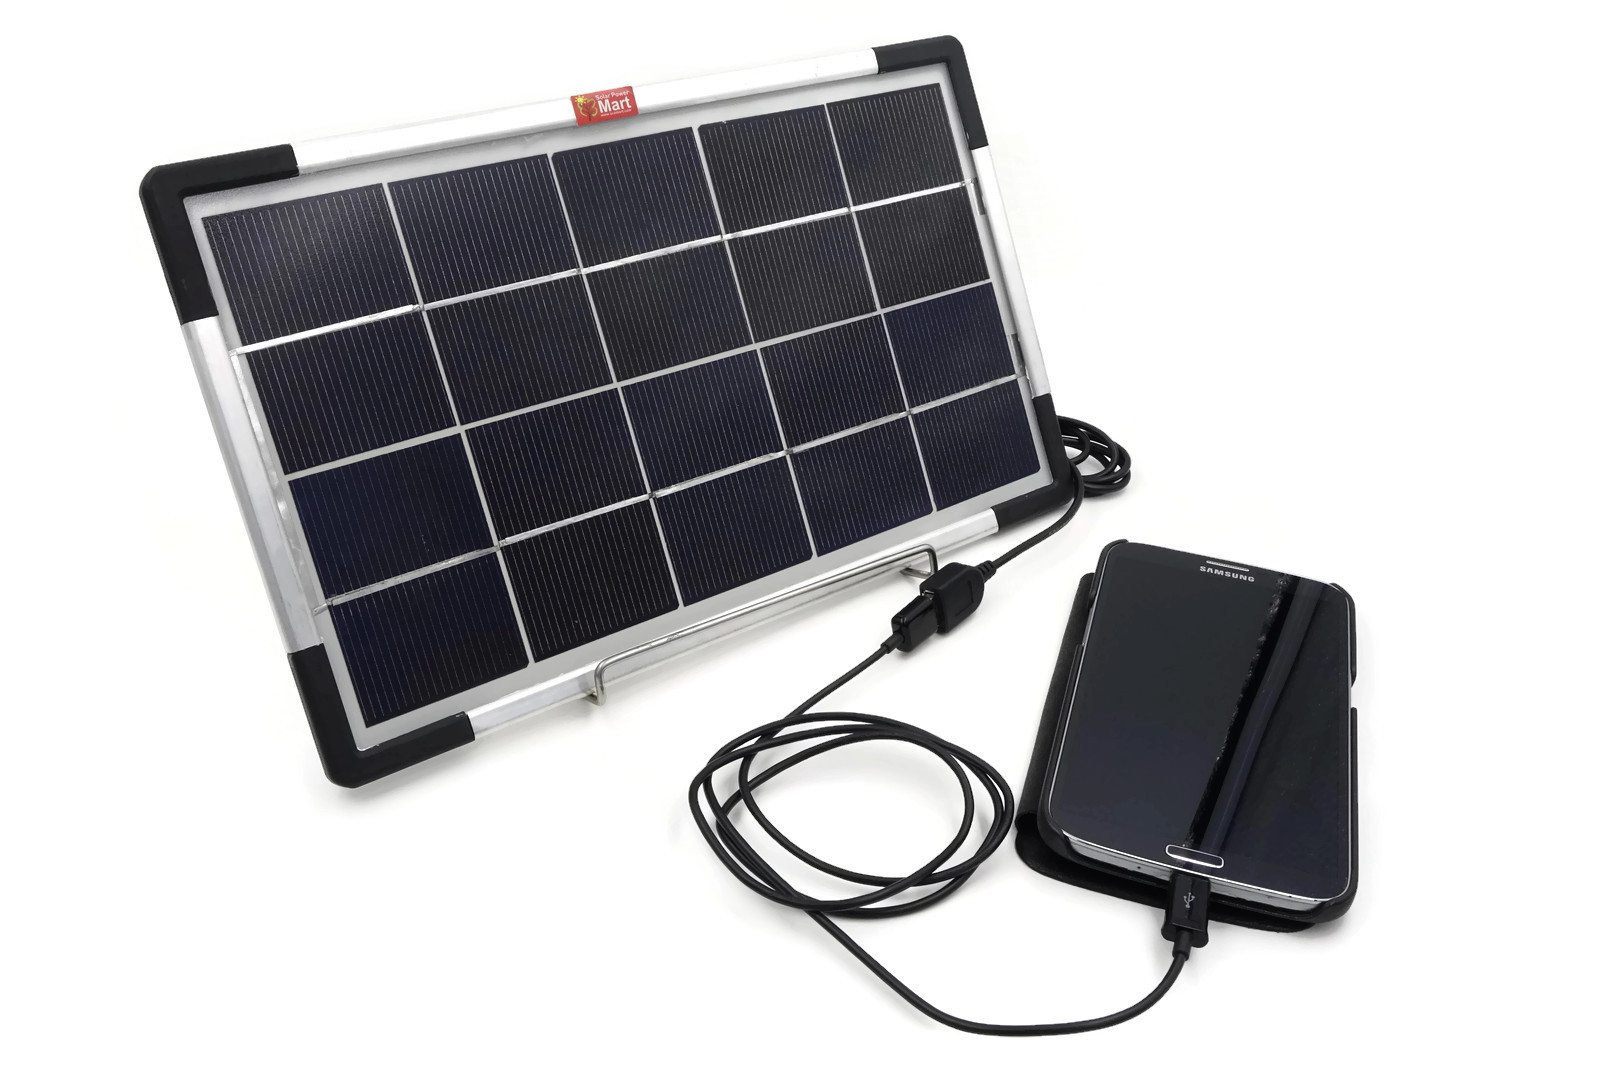 6W USB Solar Panel DIY Solar Power Lighting Kit | eBay